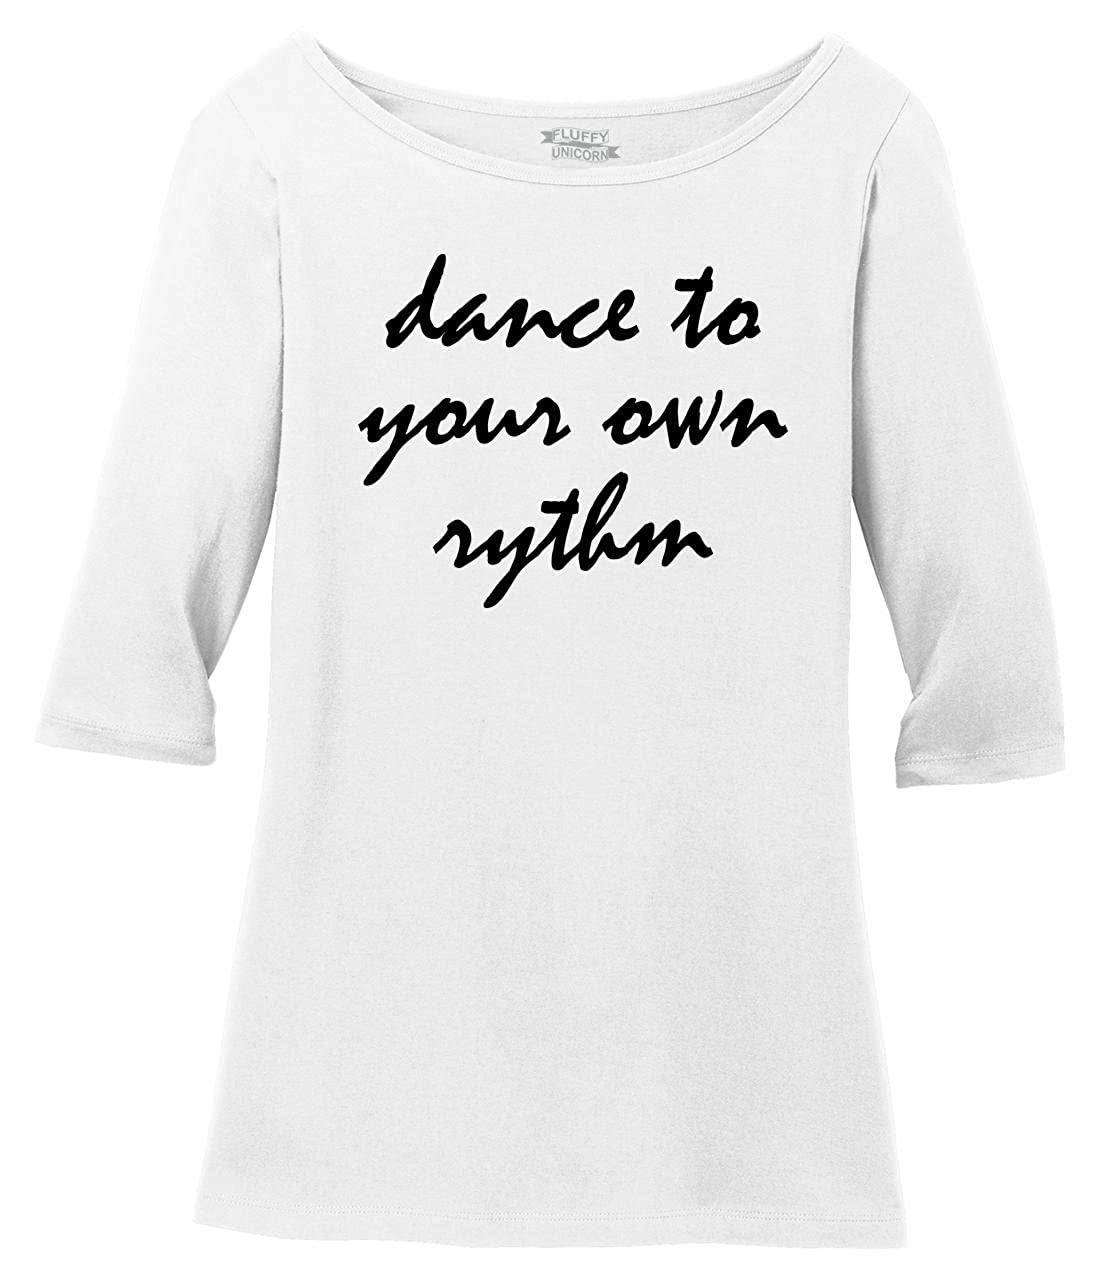 e349c07dd443af Amazon.com: Comical Shirt Ladies Dance to Your Own Rythm Scoop 3/4-Slv Tee:  Clothing